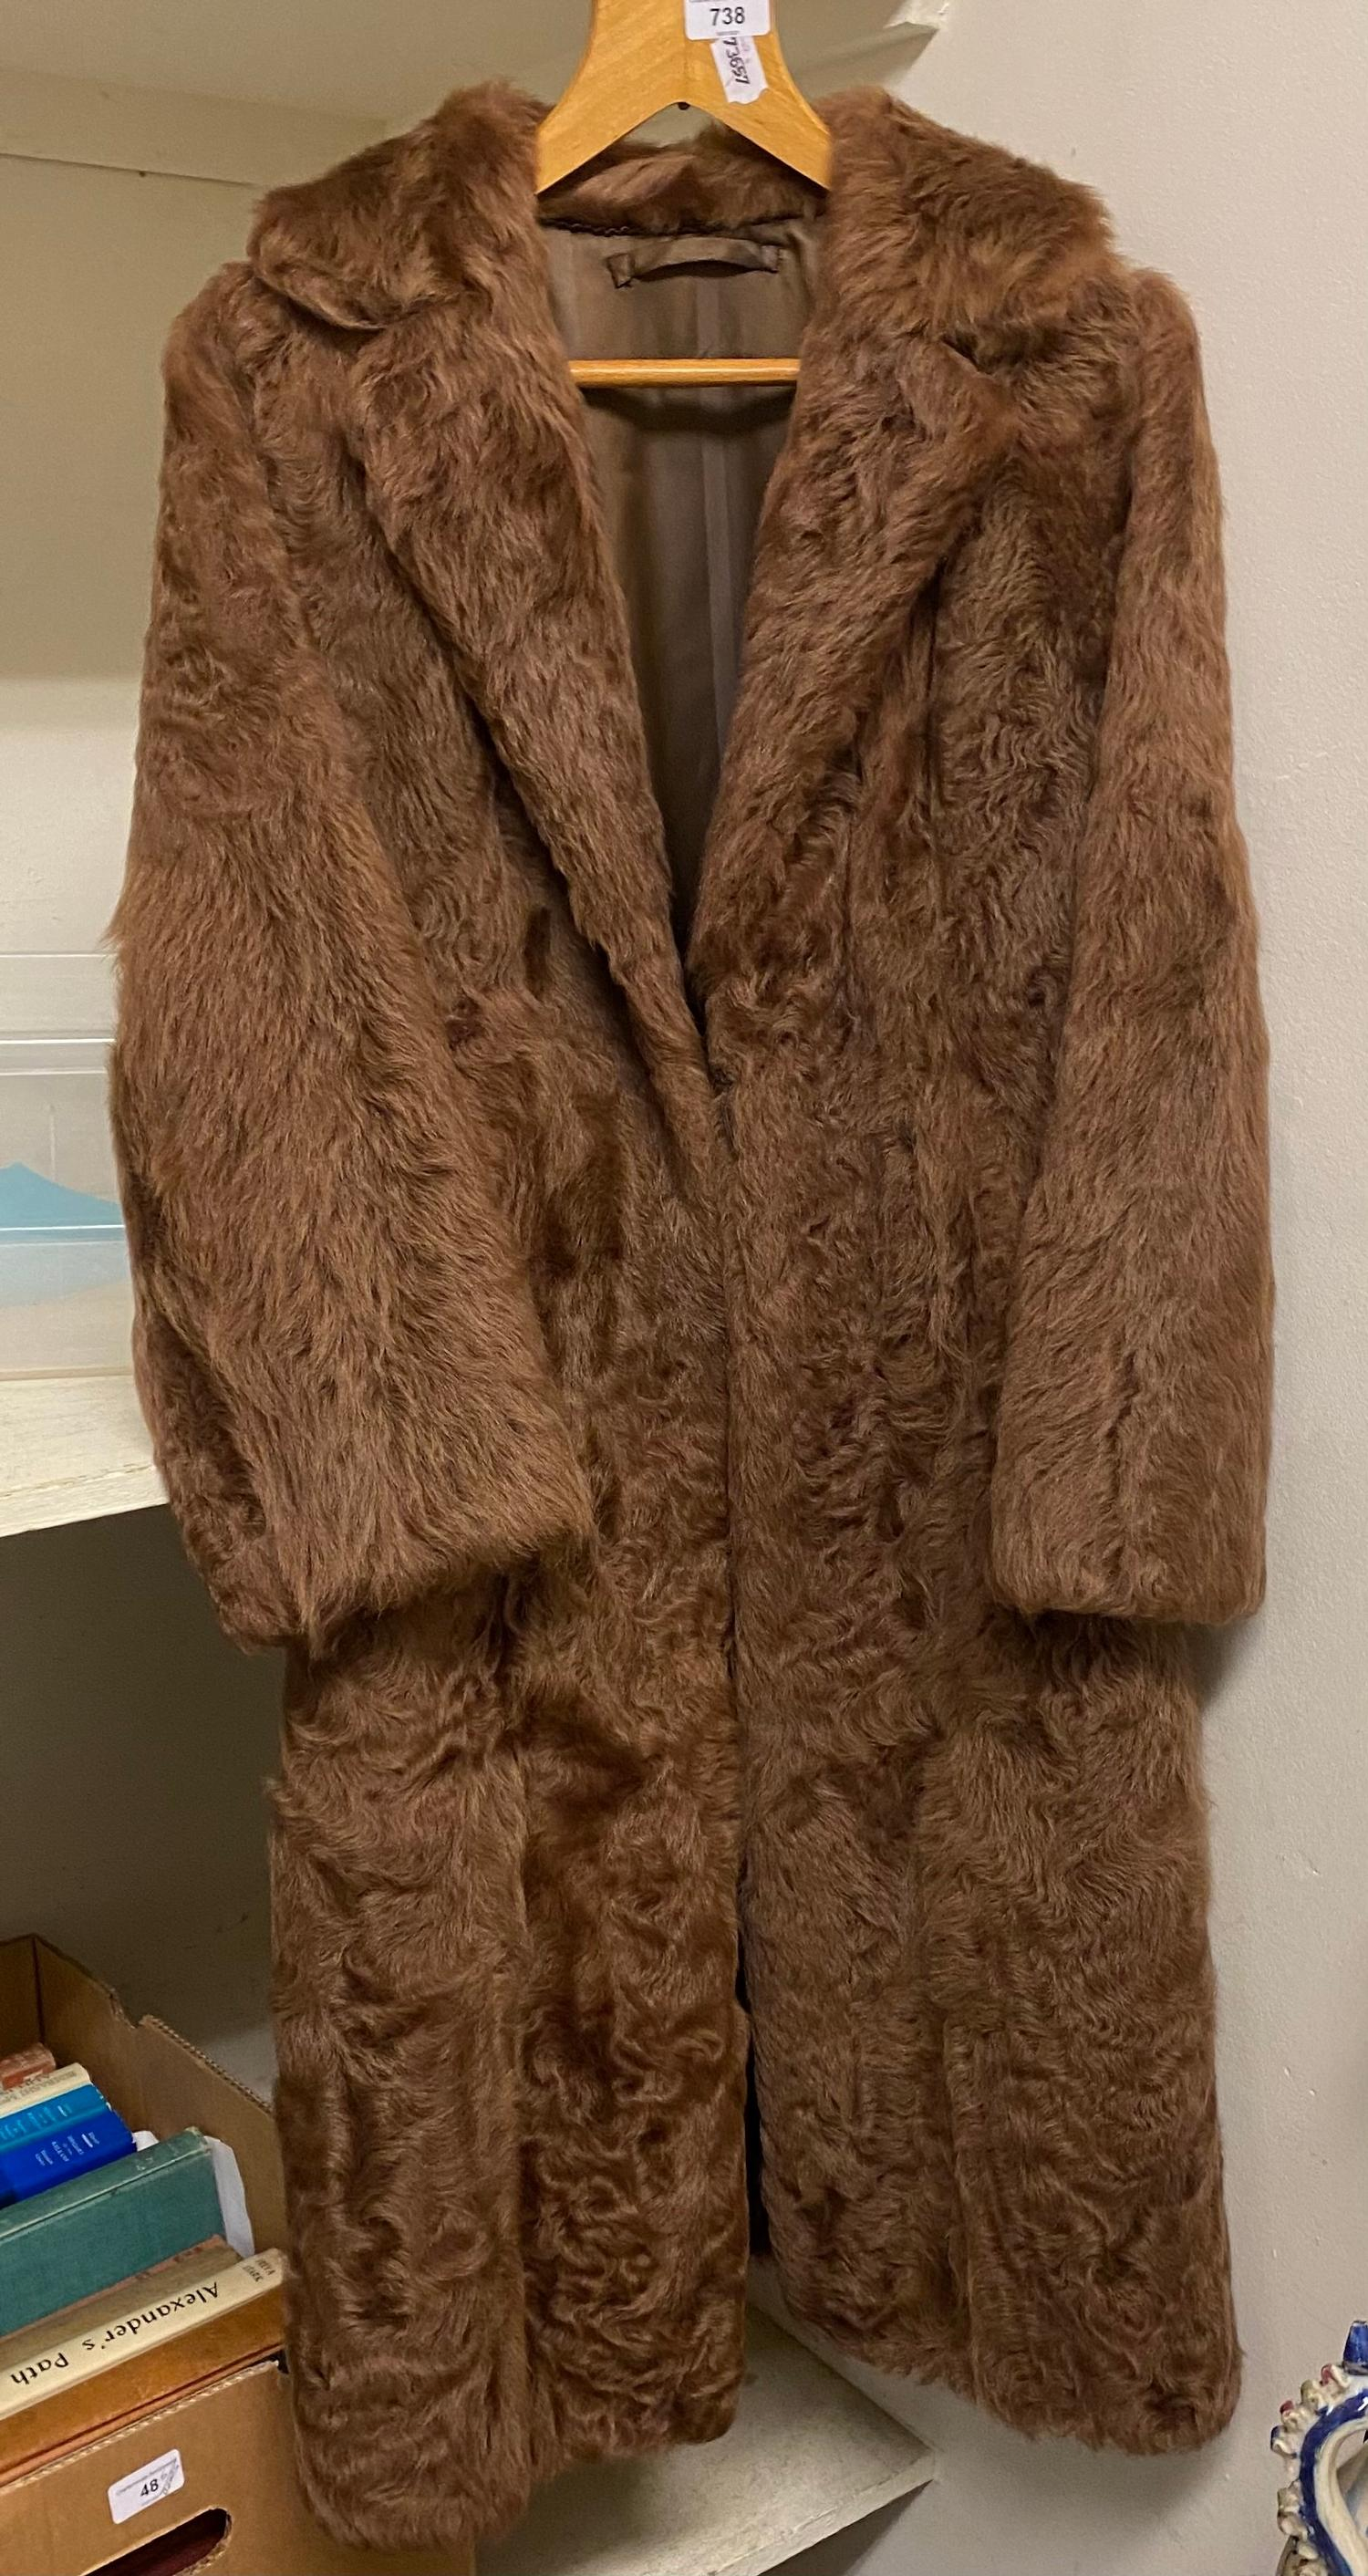 A fur coat, by Singewald of Hamburg